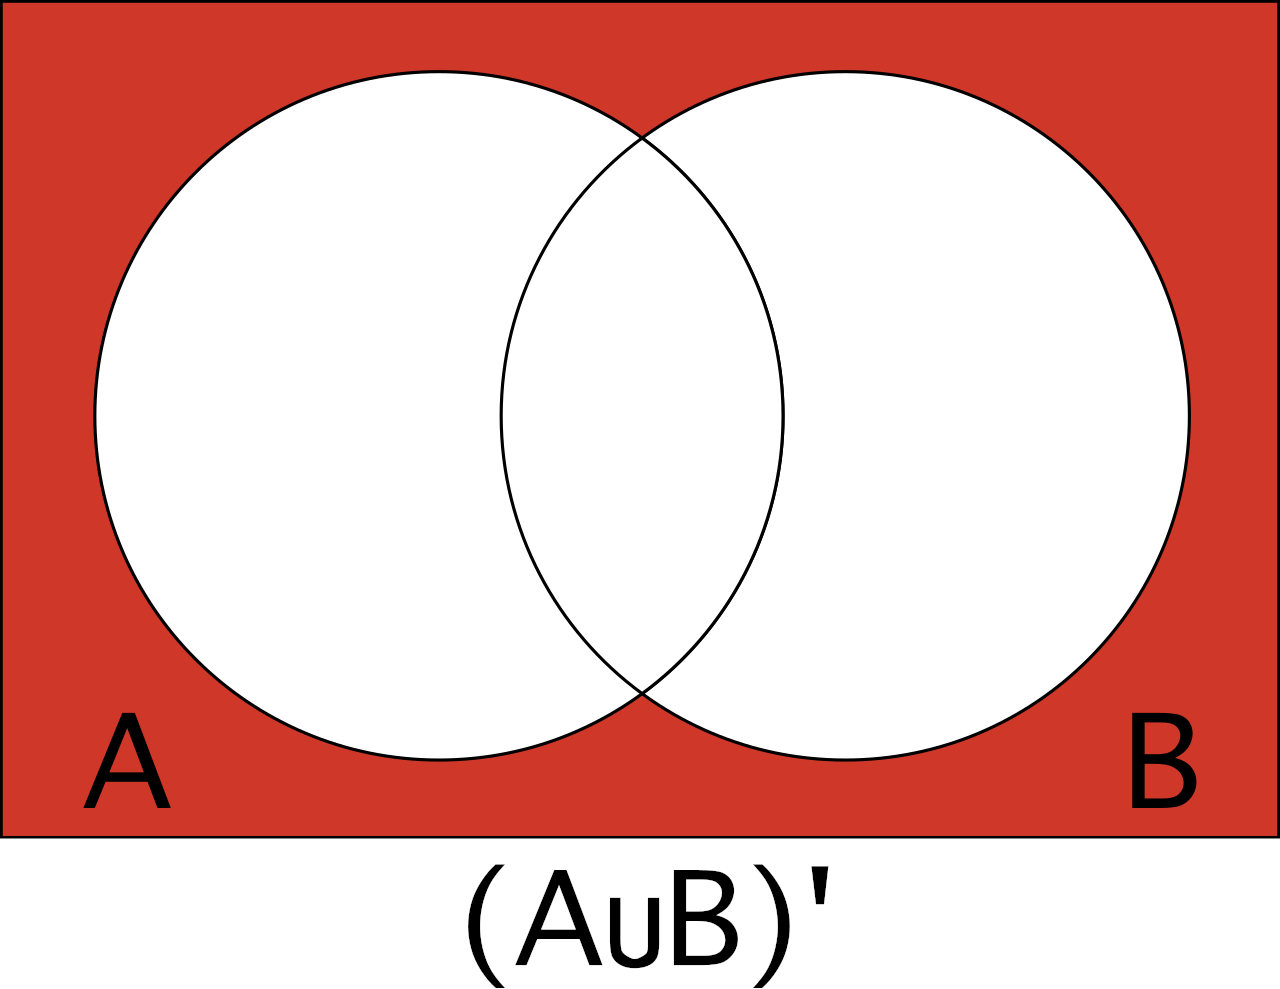 Venn diagram to help visualize the complement of A union B